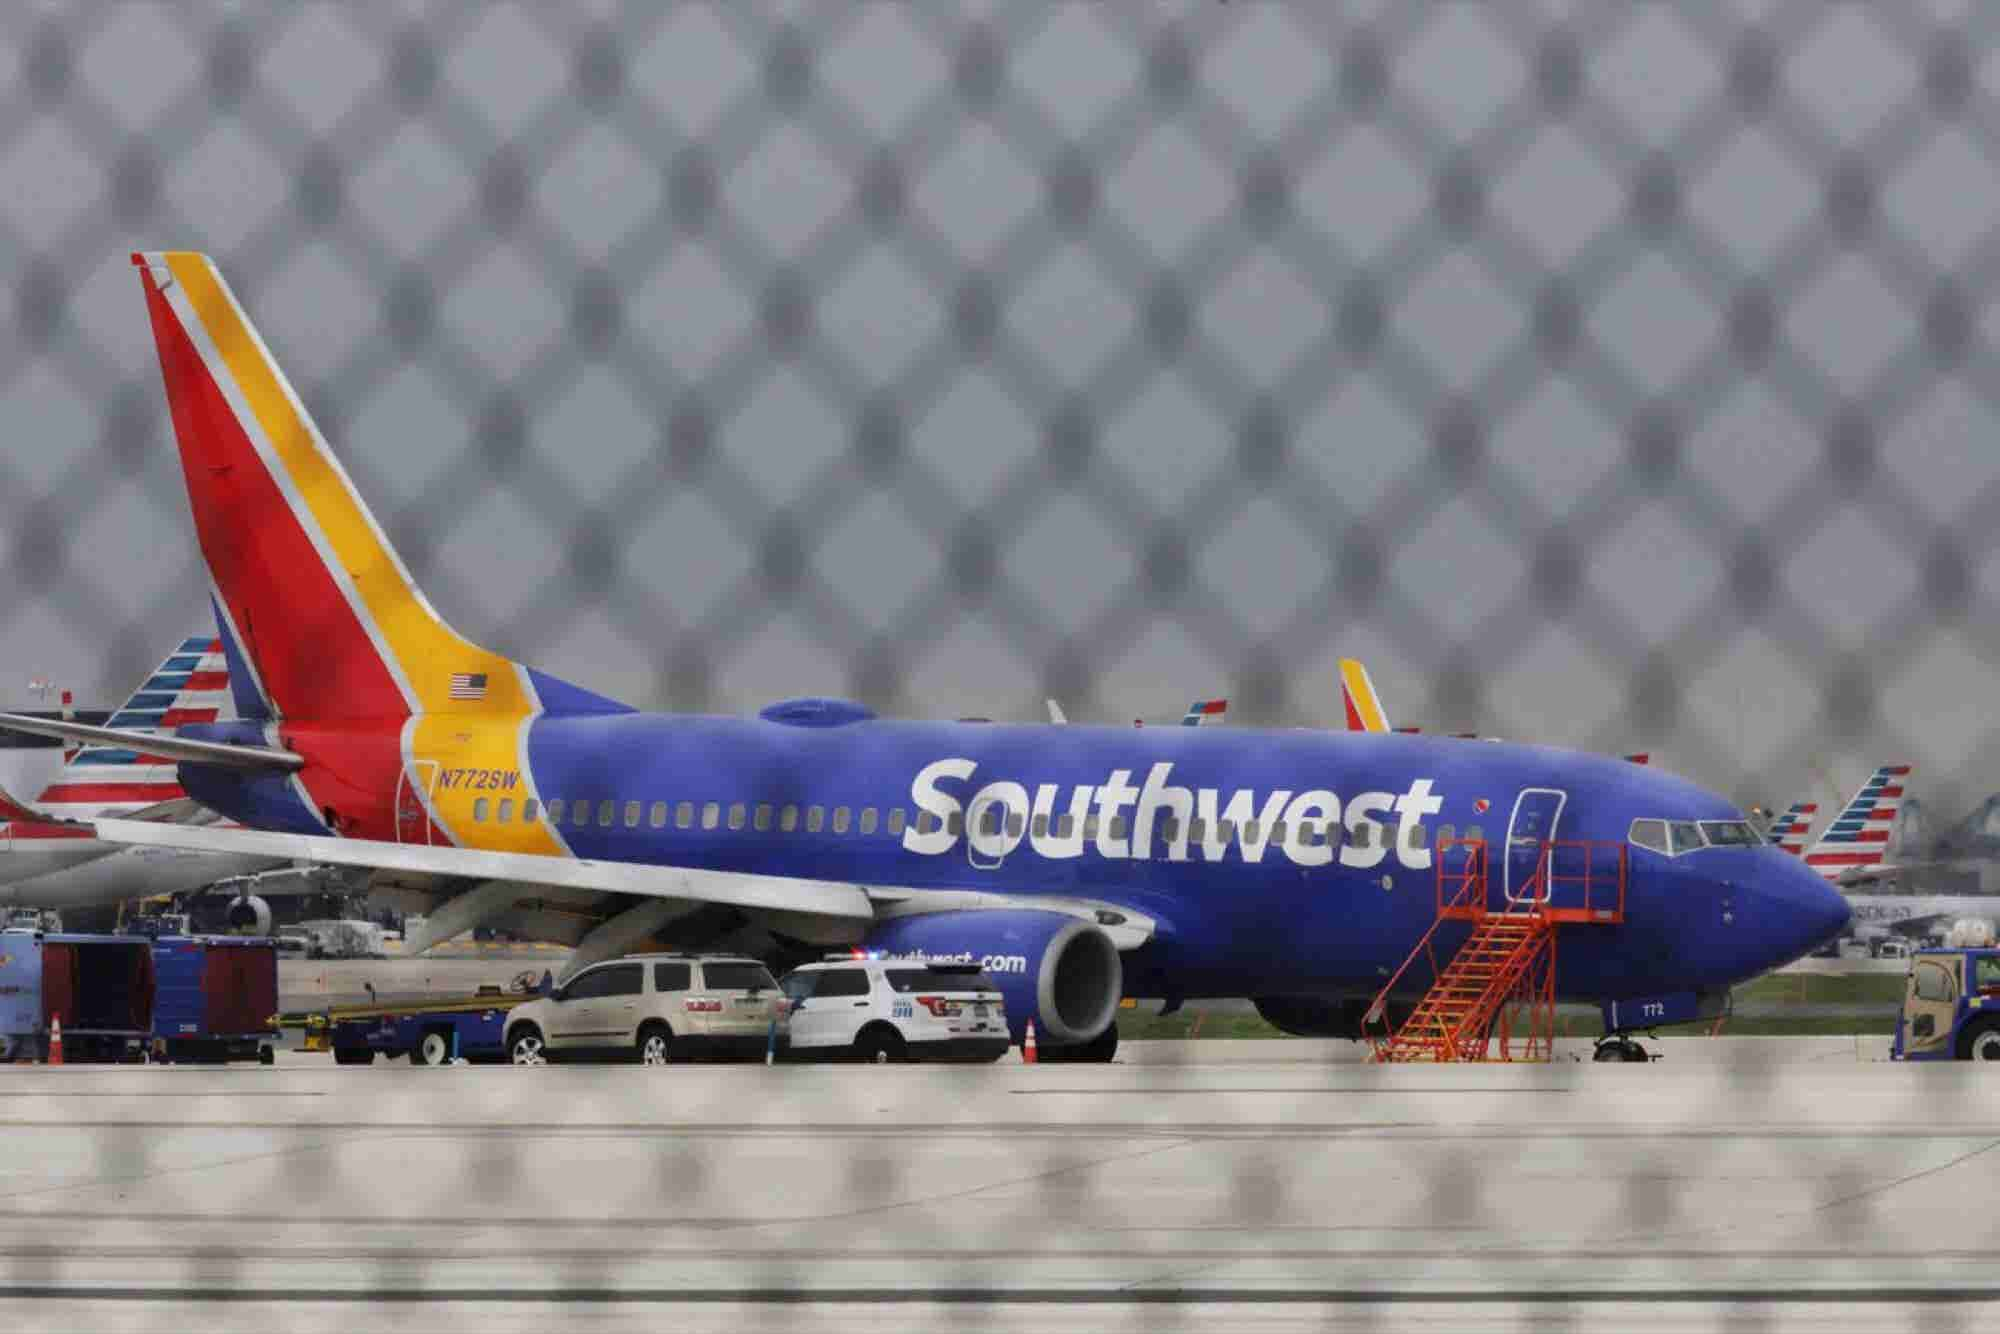 Southwest's Heroic Crew Shows How a Strong Leader and Preparation Crea...